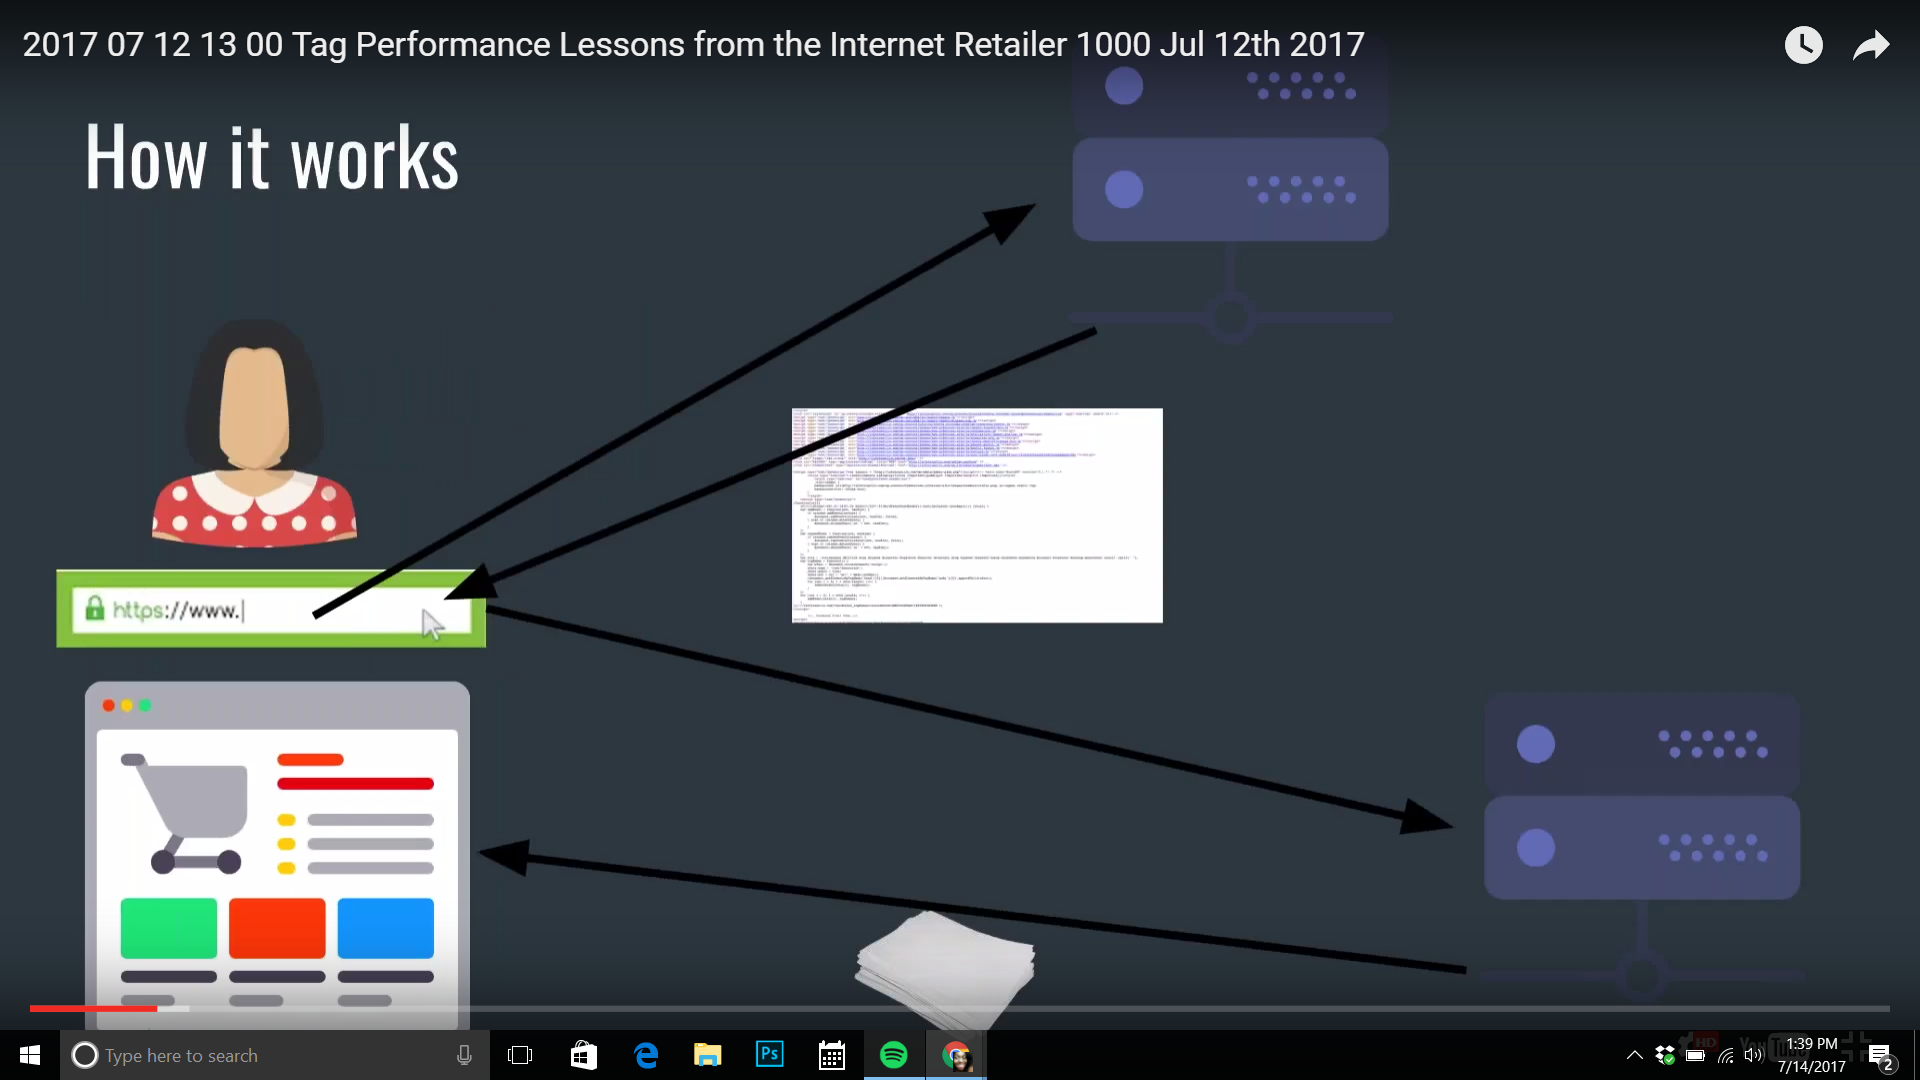 Tag Performance Lessons from the Internet Retailer 1000